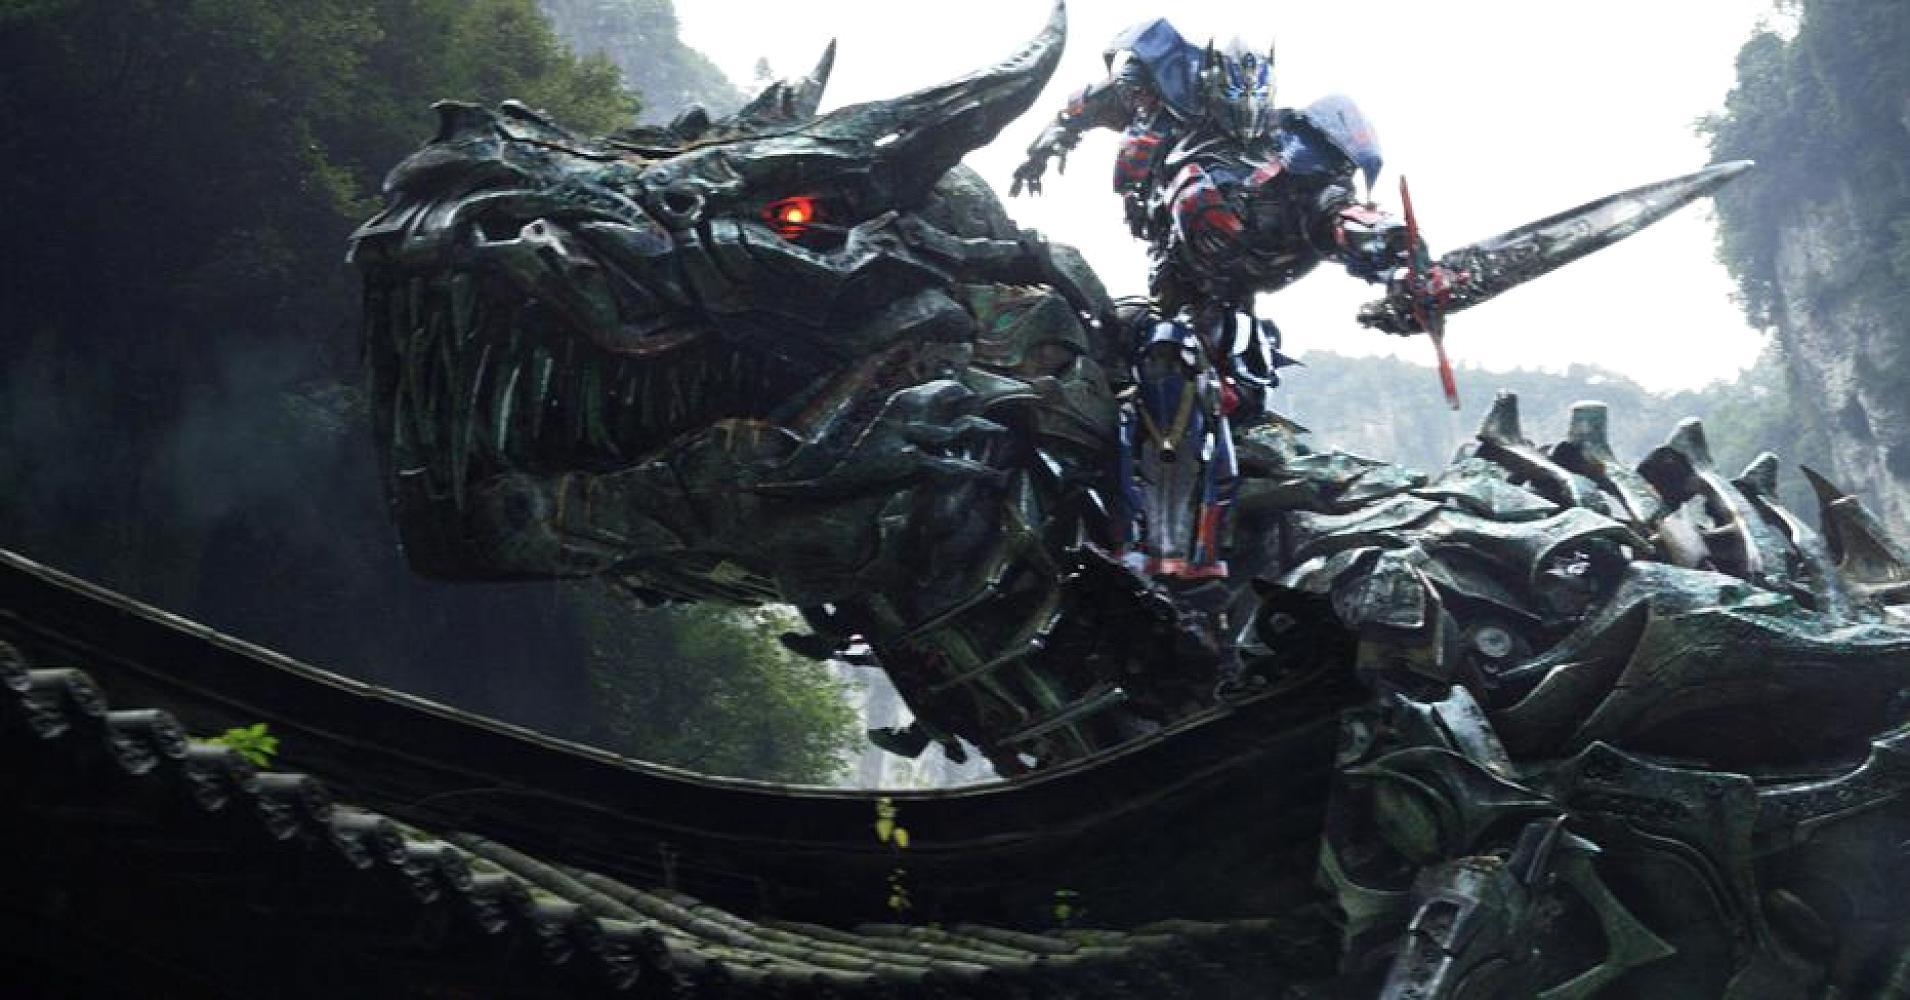 Hasbro to roll out 4 more 'Transformers' films